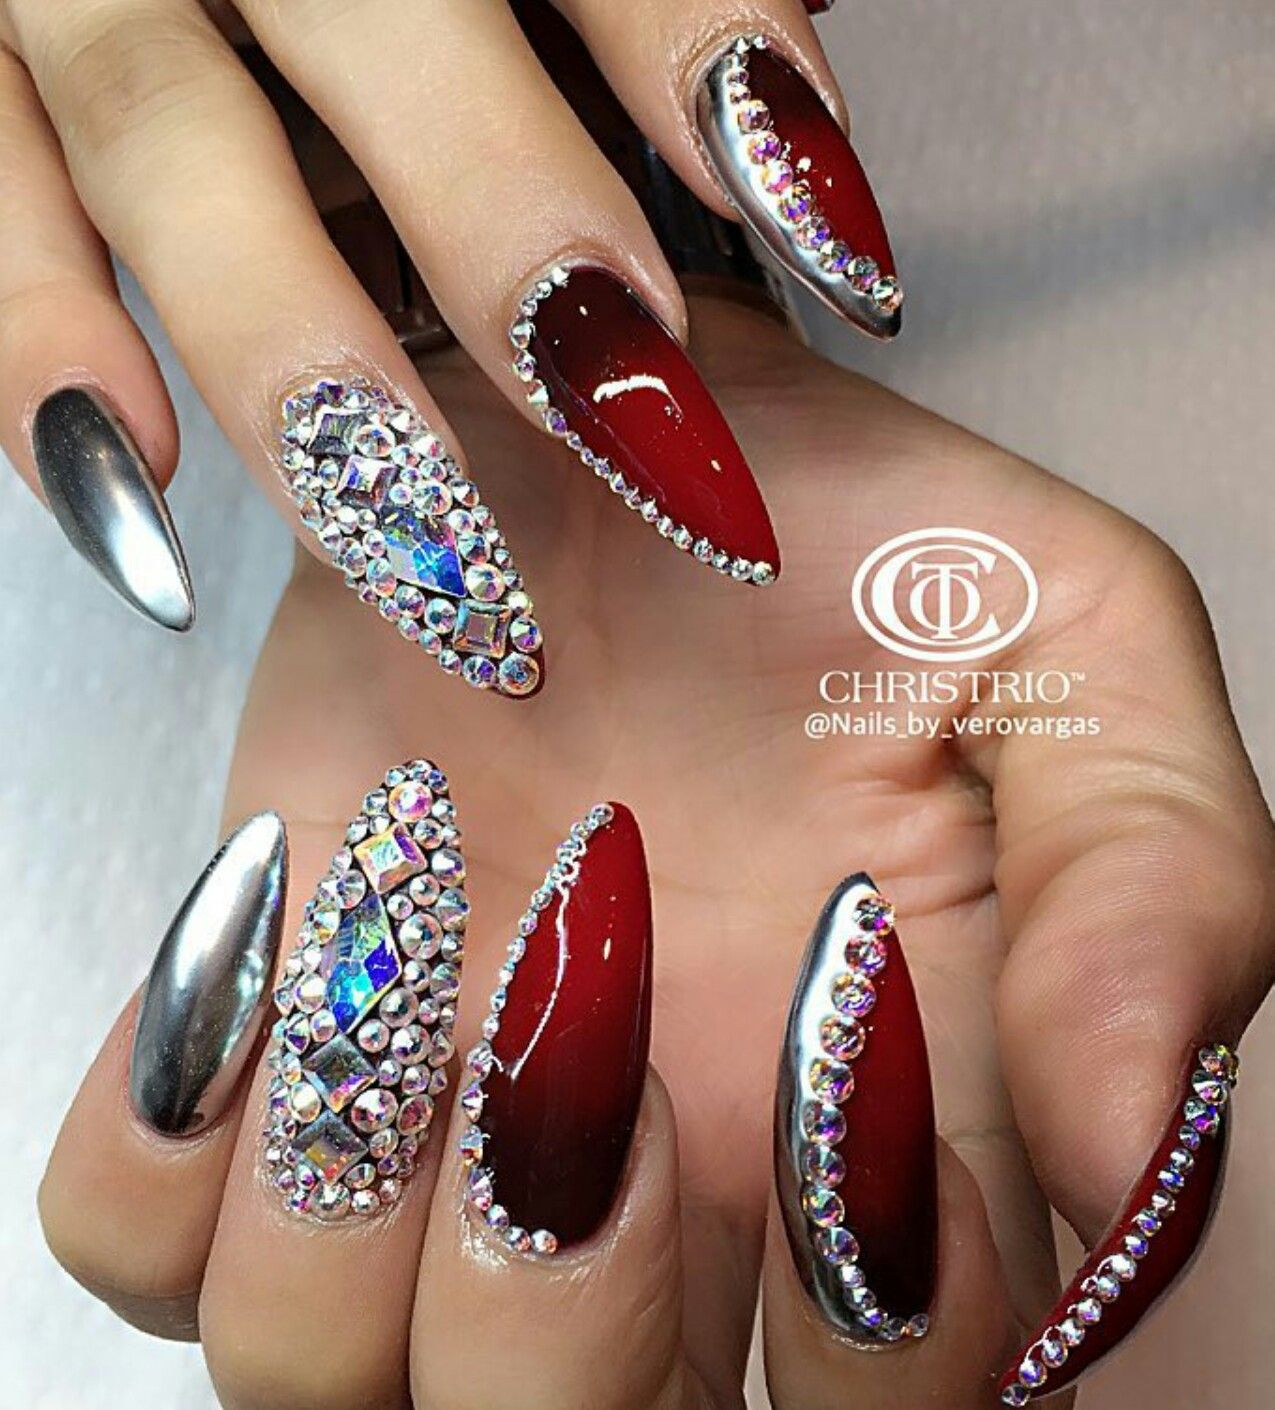 Red silver rhinestone nails design nailart - Red Silver Rhinestone Nails Design Nailart Nails Pinterest